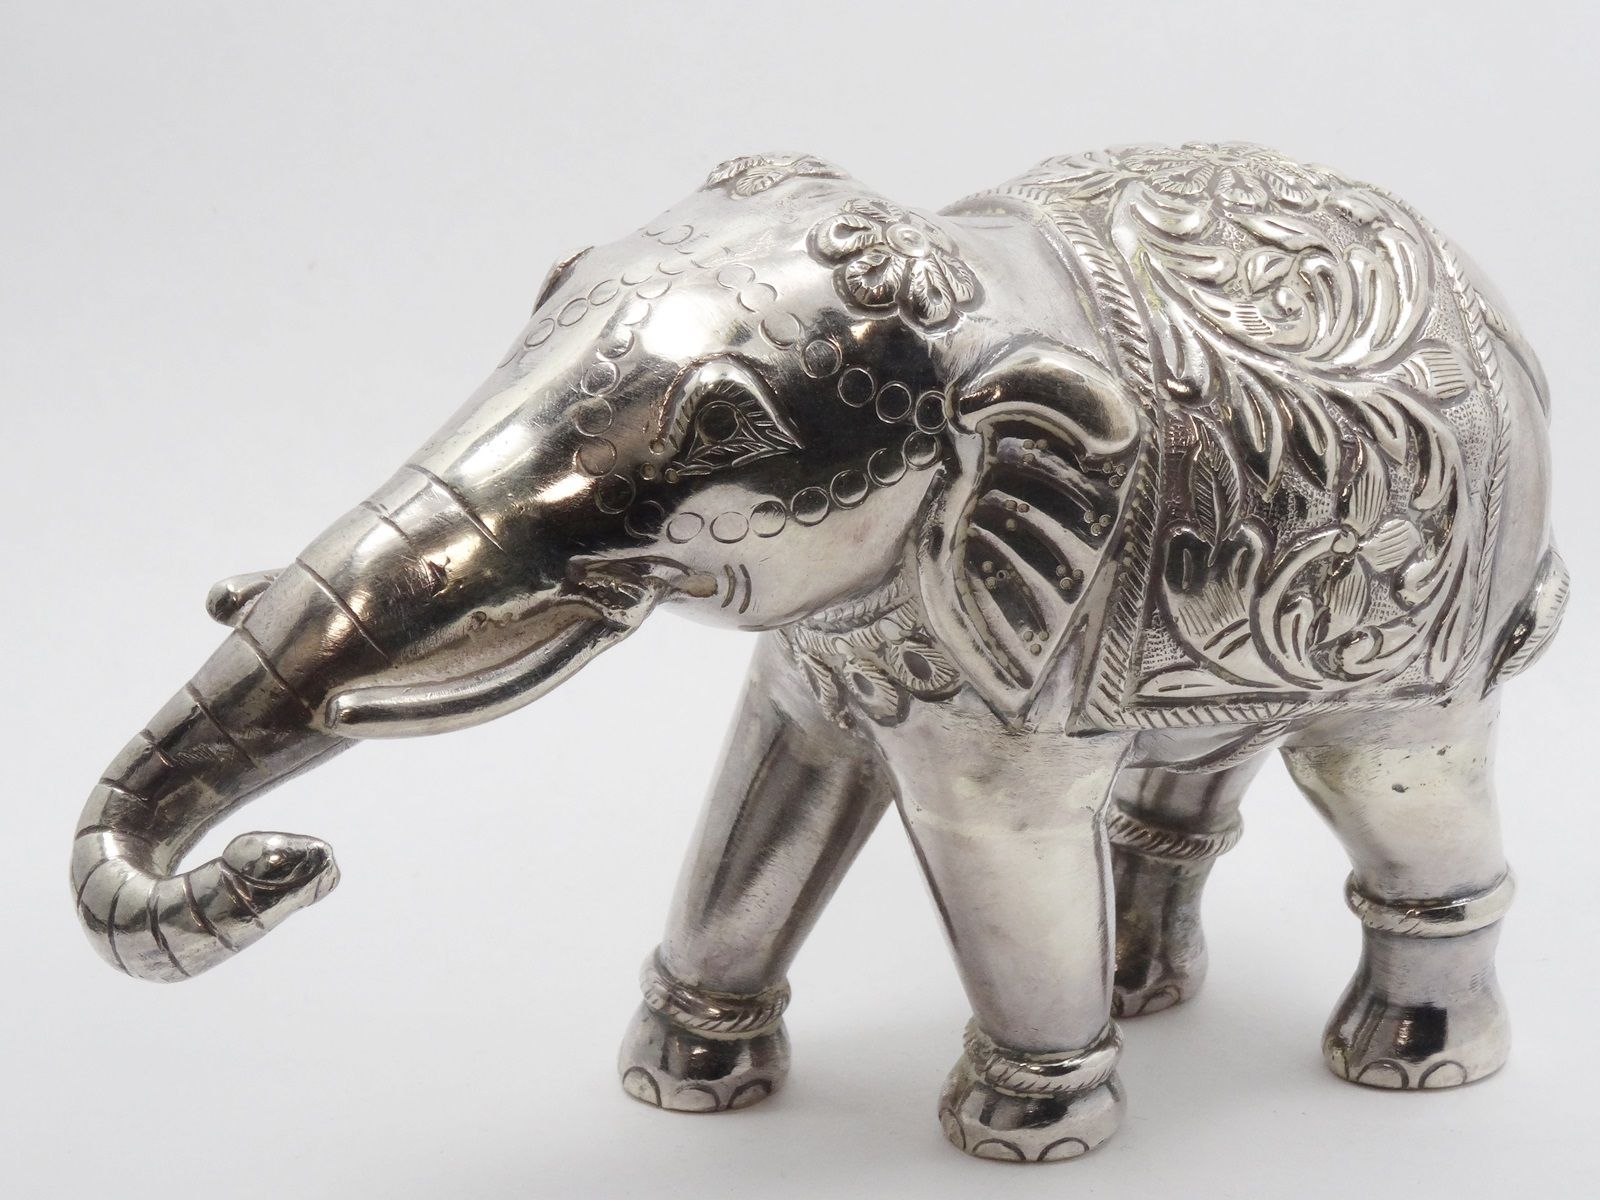 Miniature Sterling Silver Figurine